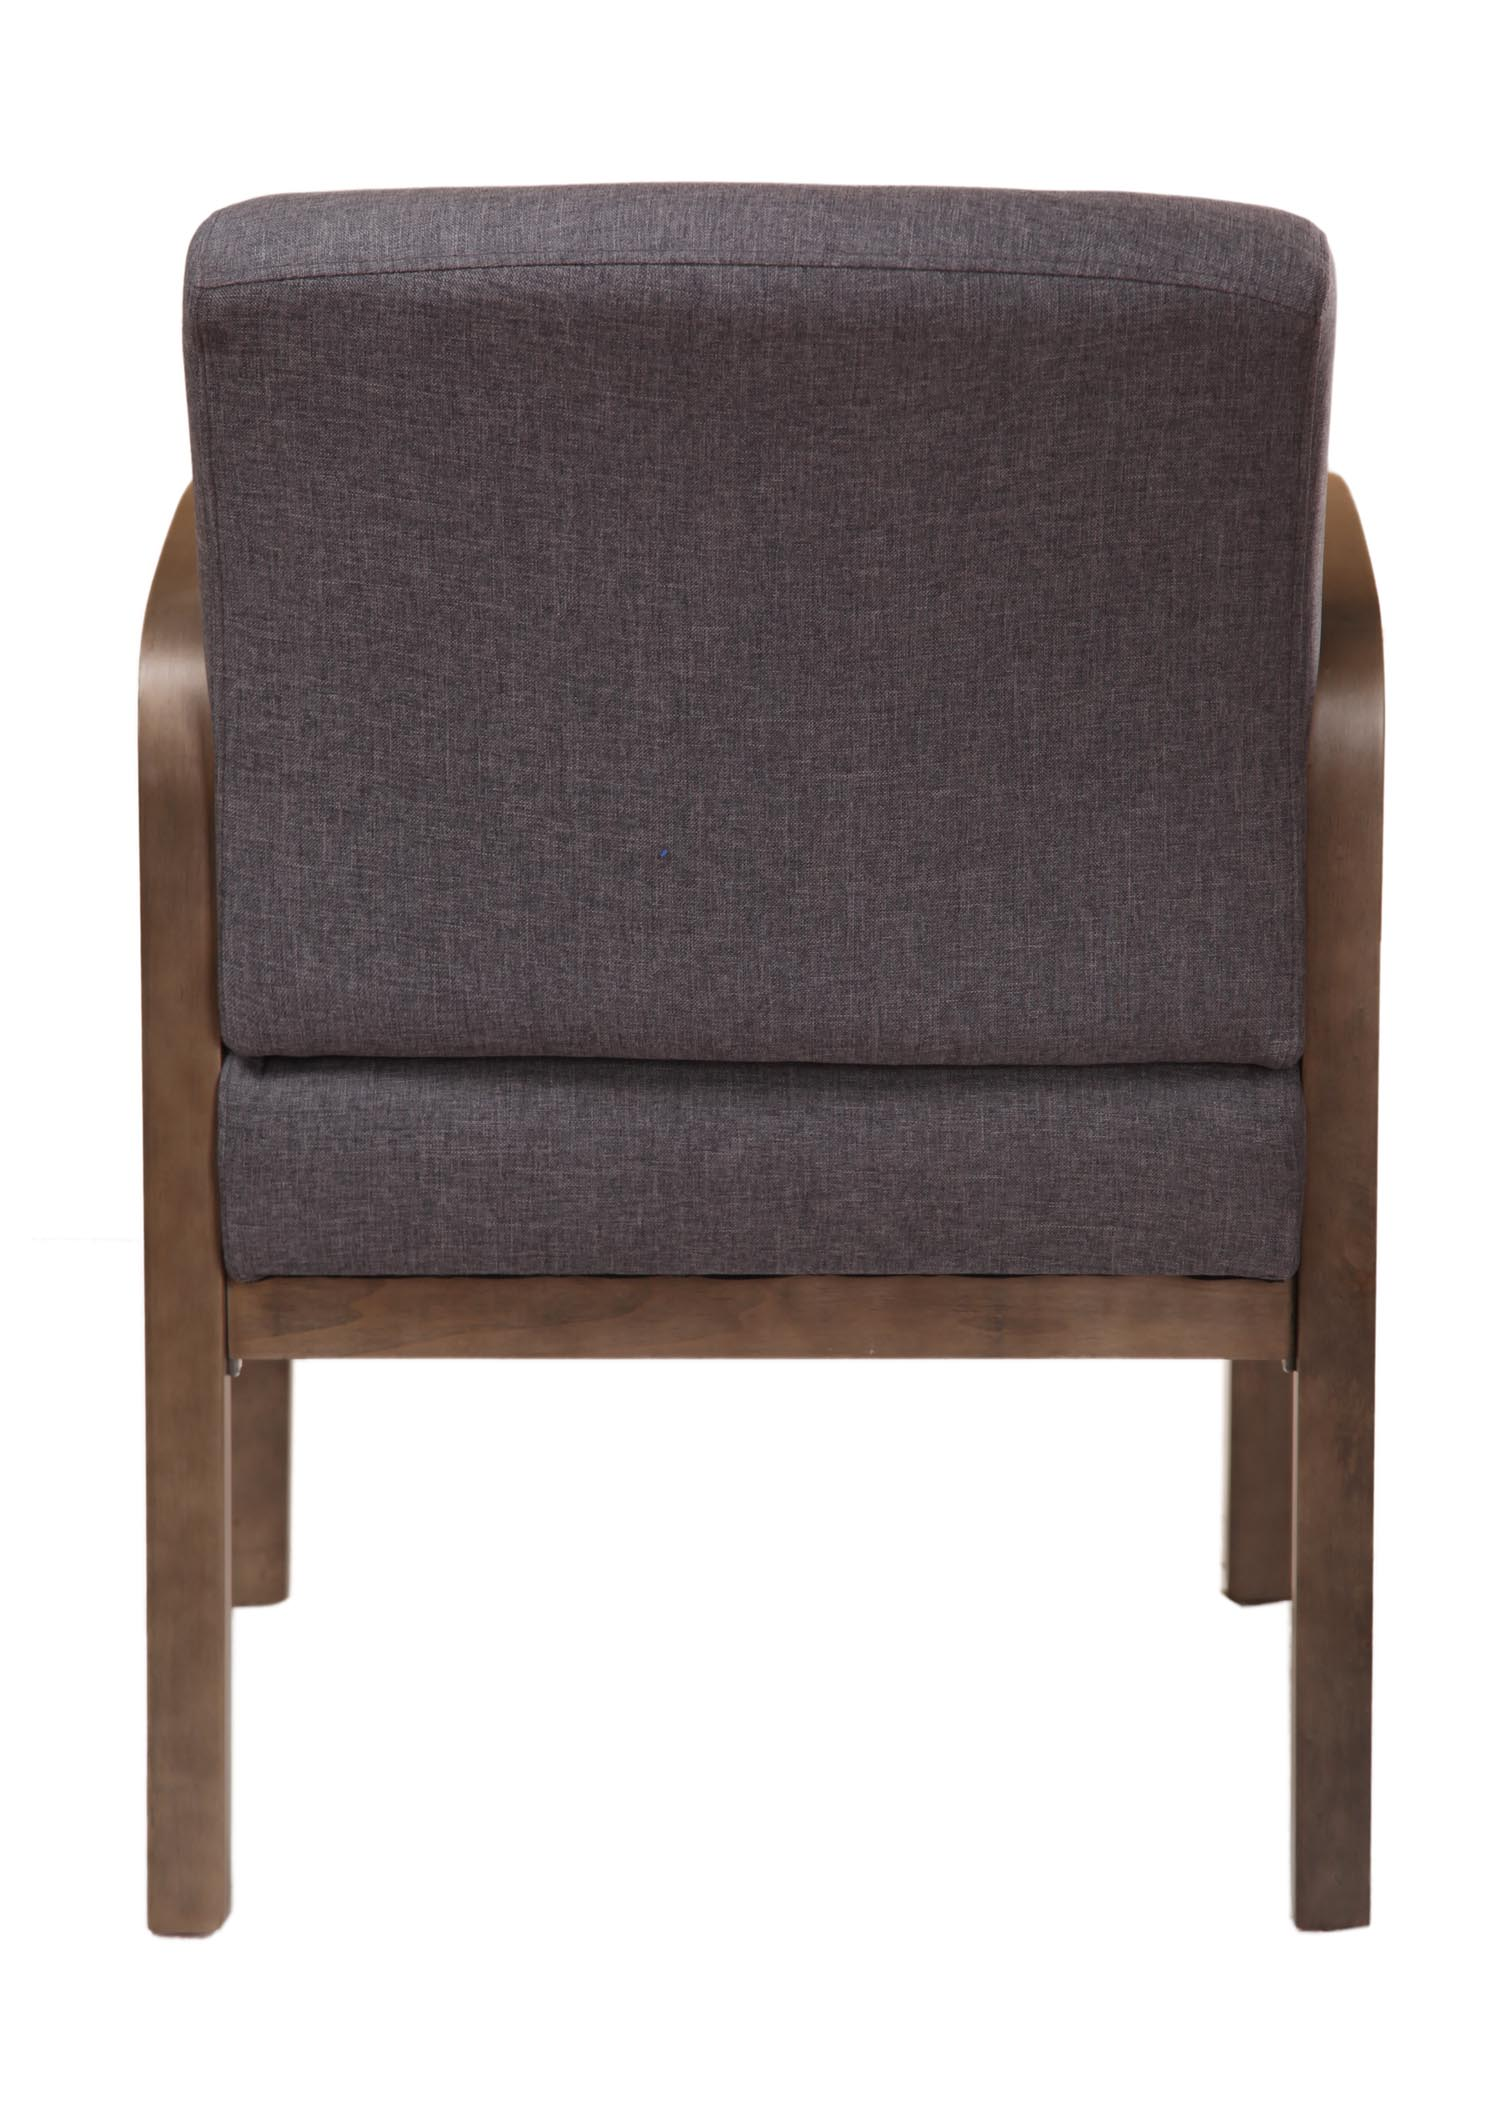 boss ntr executive leatherplus chair clear polycarbonate no tools required guest slate grey  bosschair